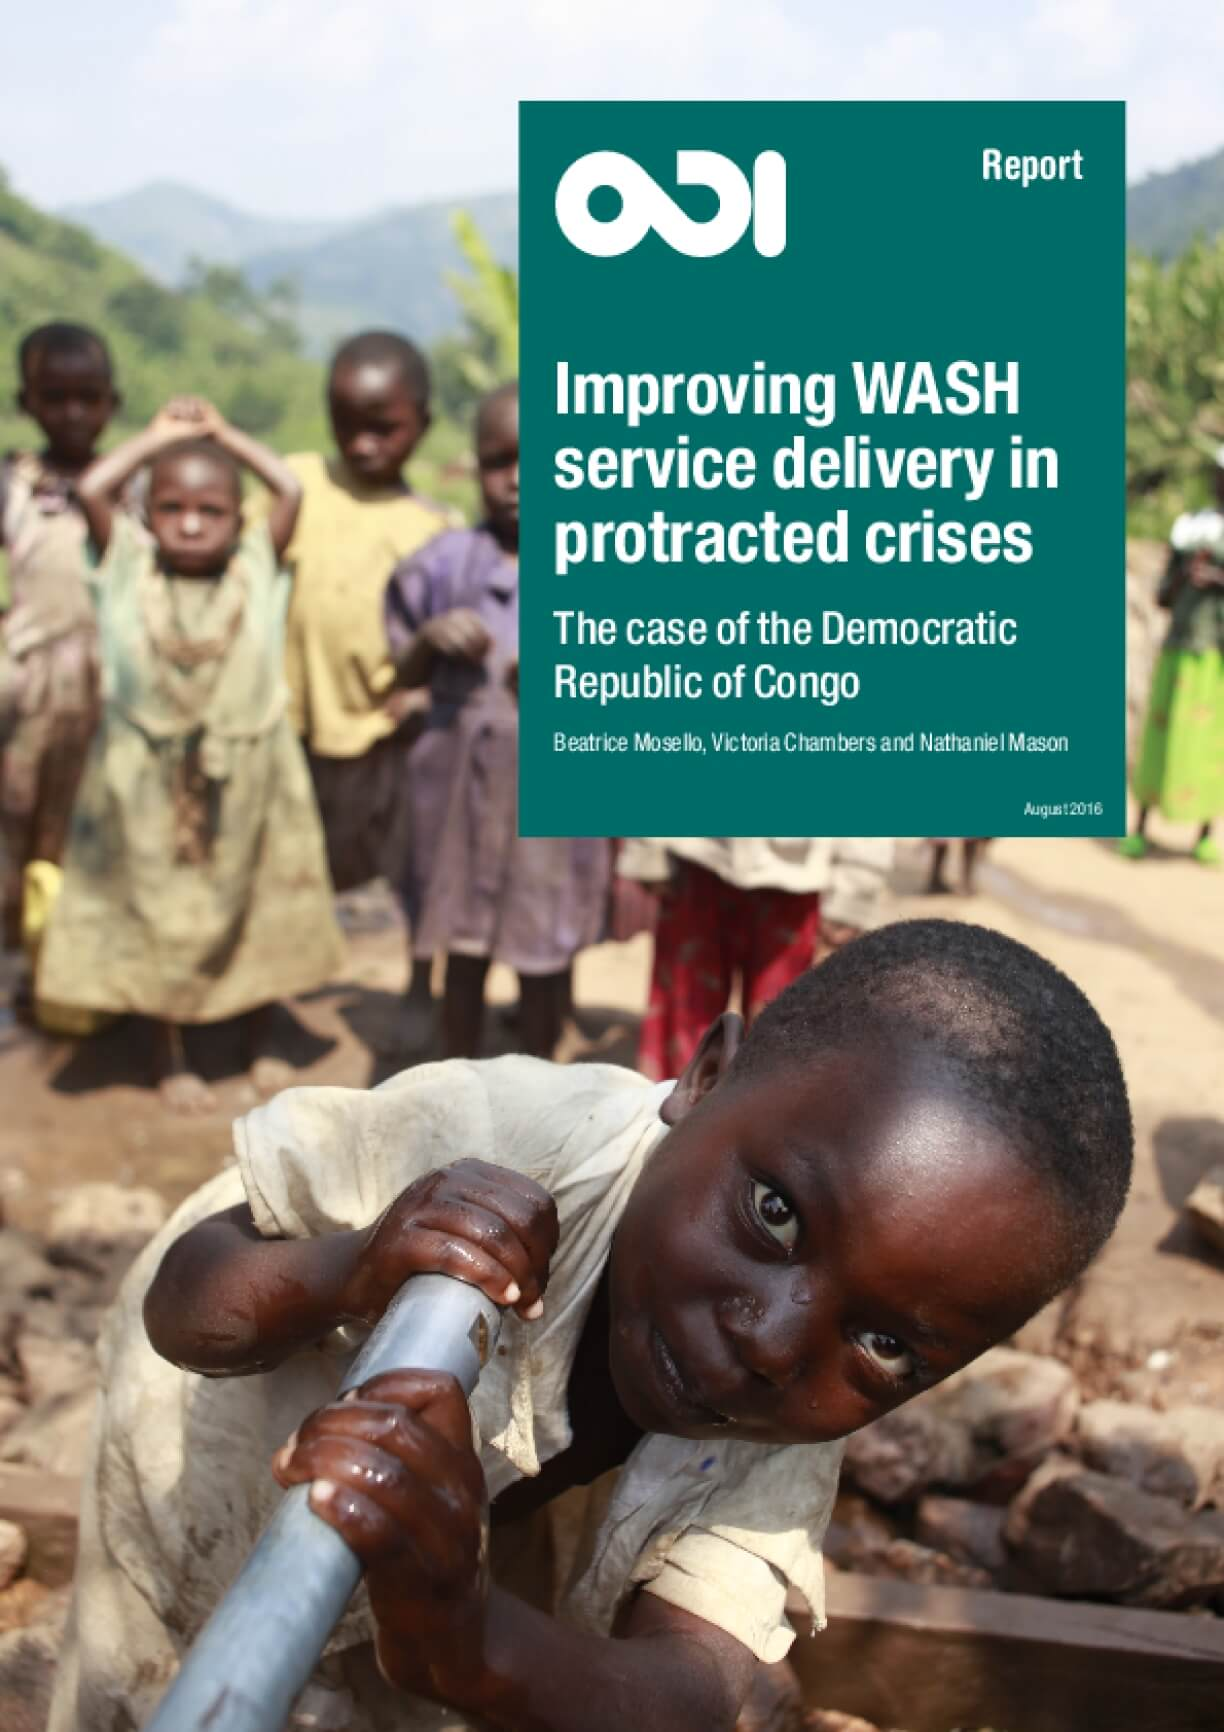 Improving WASH Service Delivery in Protracted Crises: The Case of the Democratic Republic of Congo